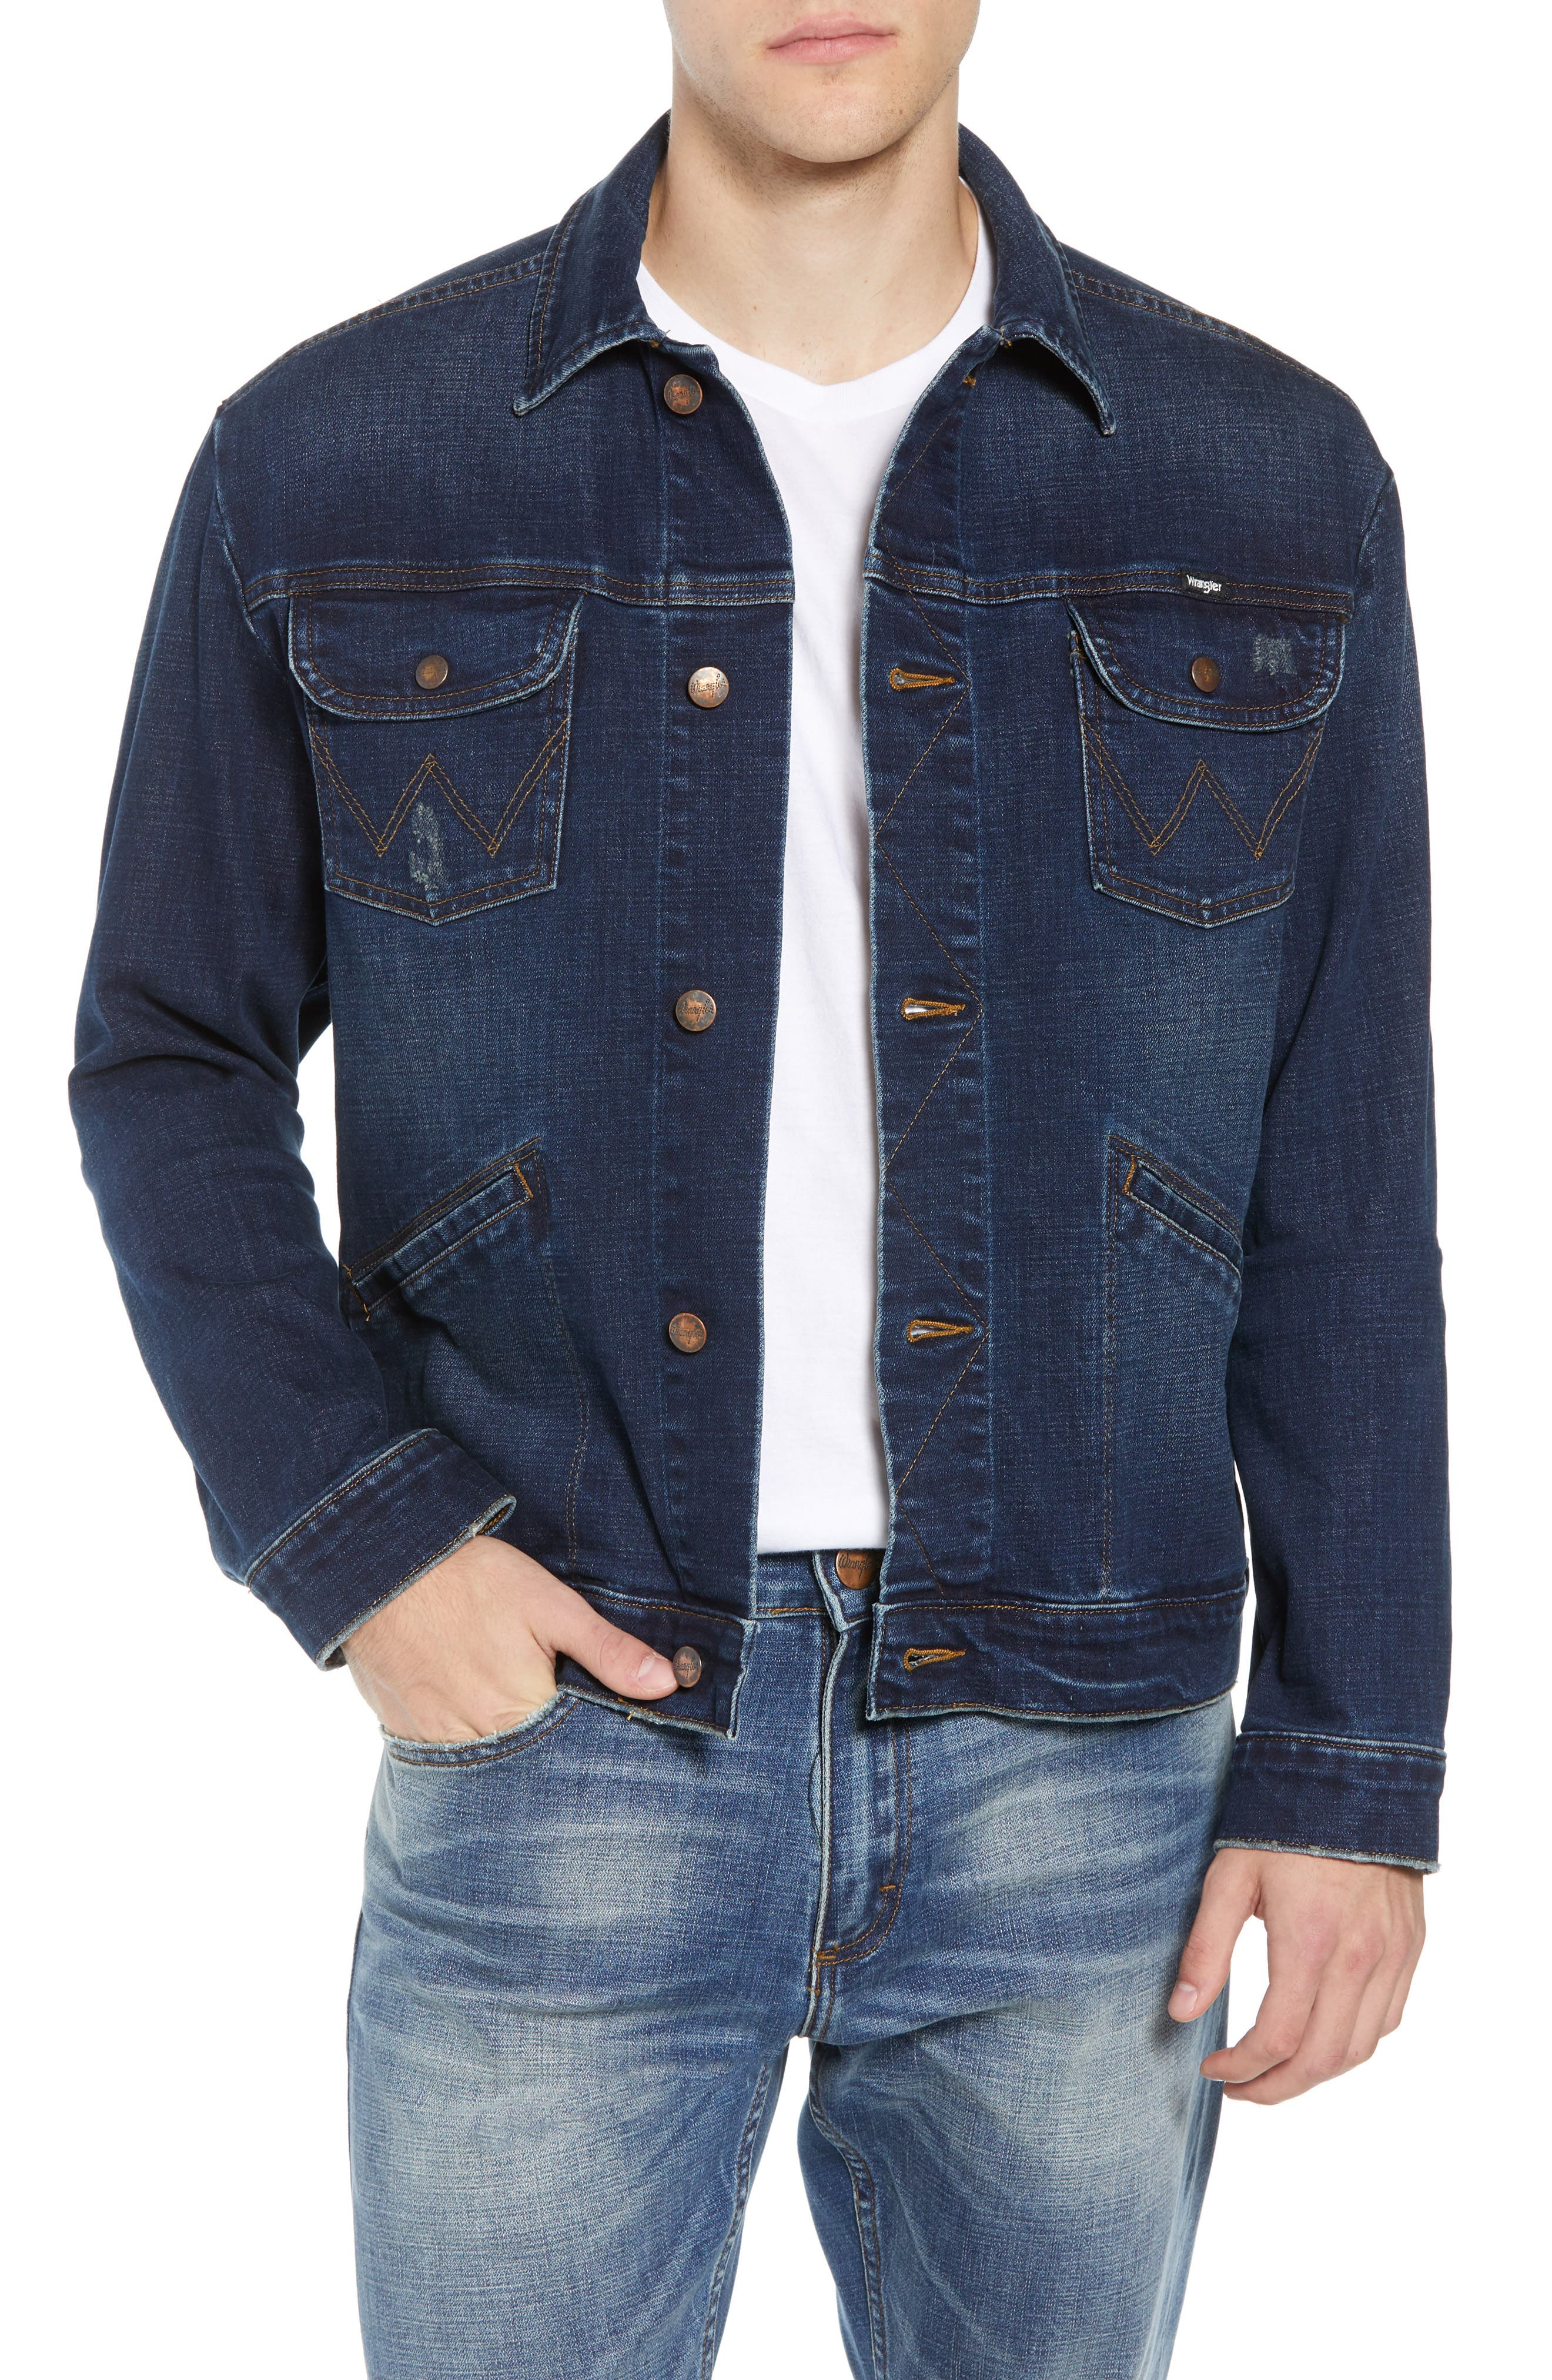 Heritage Denim Jacket,                             Main thumbnail 1, color,                             DARK WASH